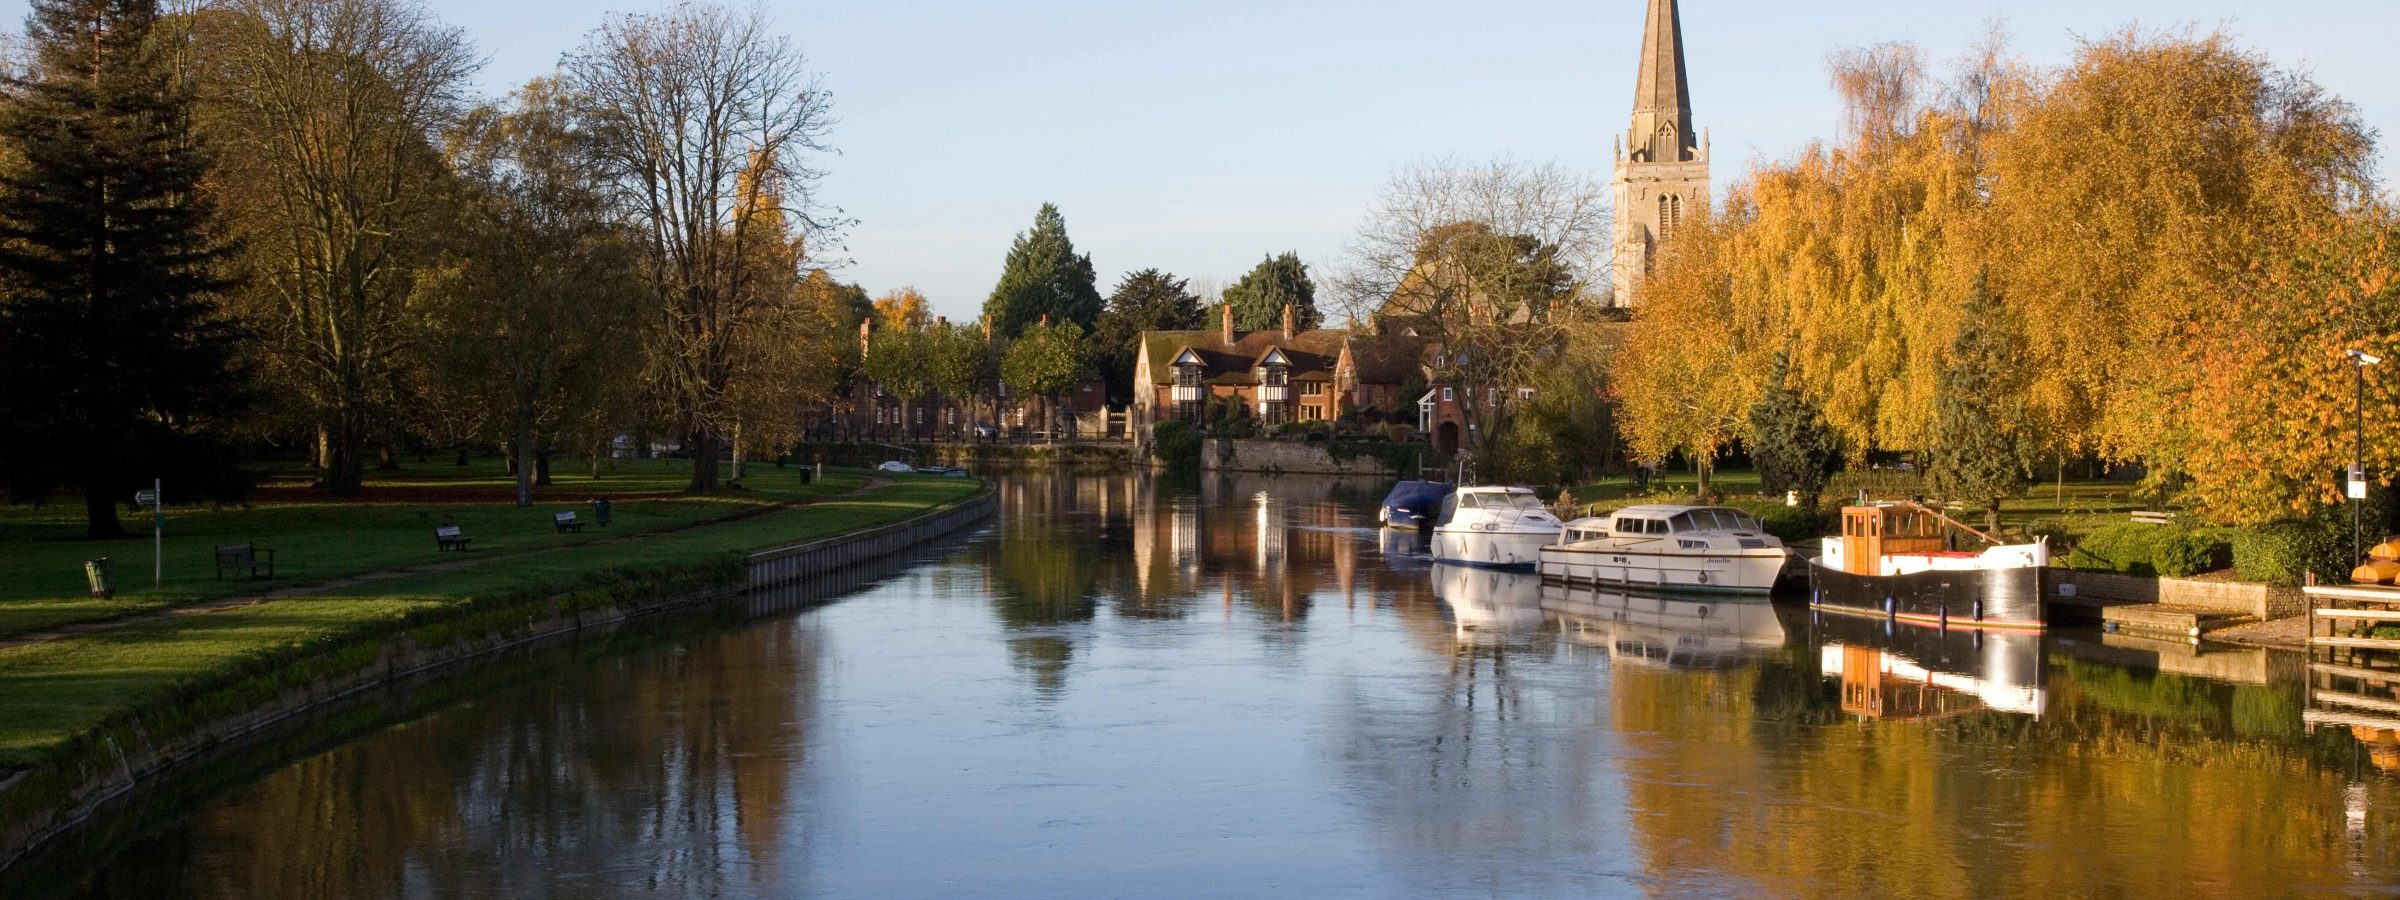 The River Thames in Abingdon, near Oxford, the riverside location of The Old Gaol, luxury serviced apartments in the heart of the Thames Valley. Ideal accommodation for business or holiday short letting